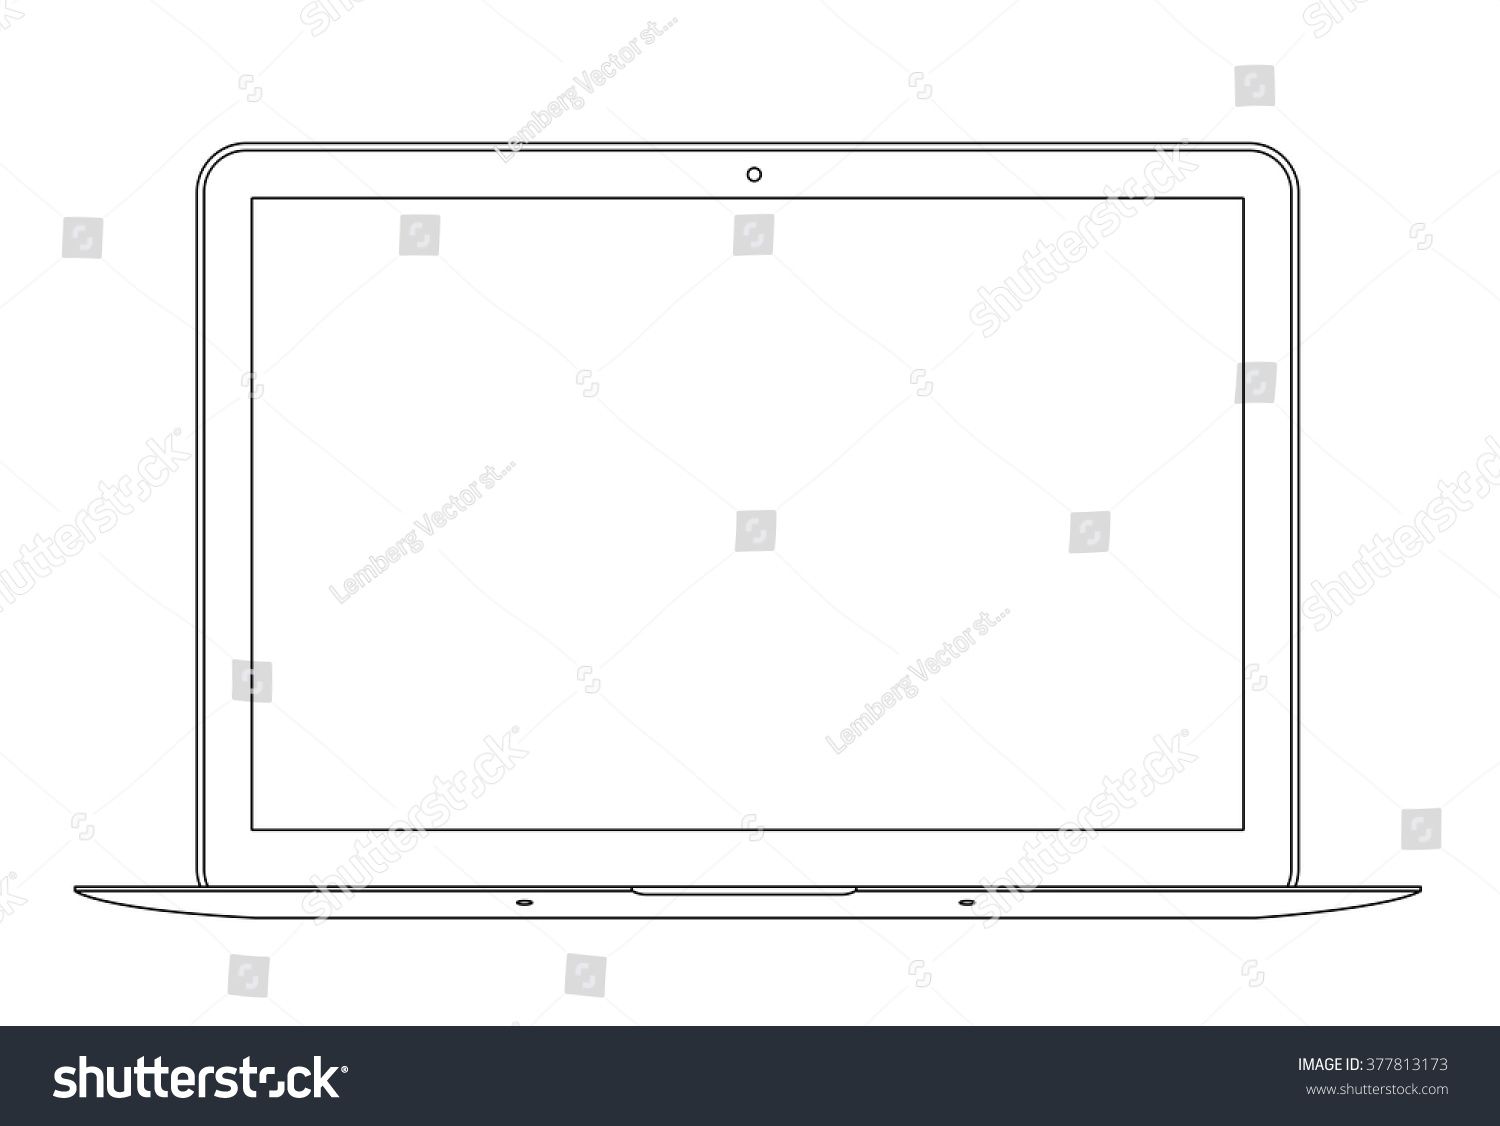 Outline Drawing Laptop Elegant Thin Line Stock Vector 377813173 ...